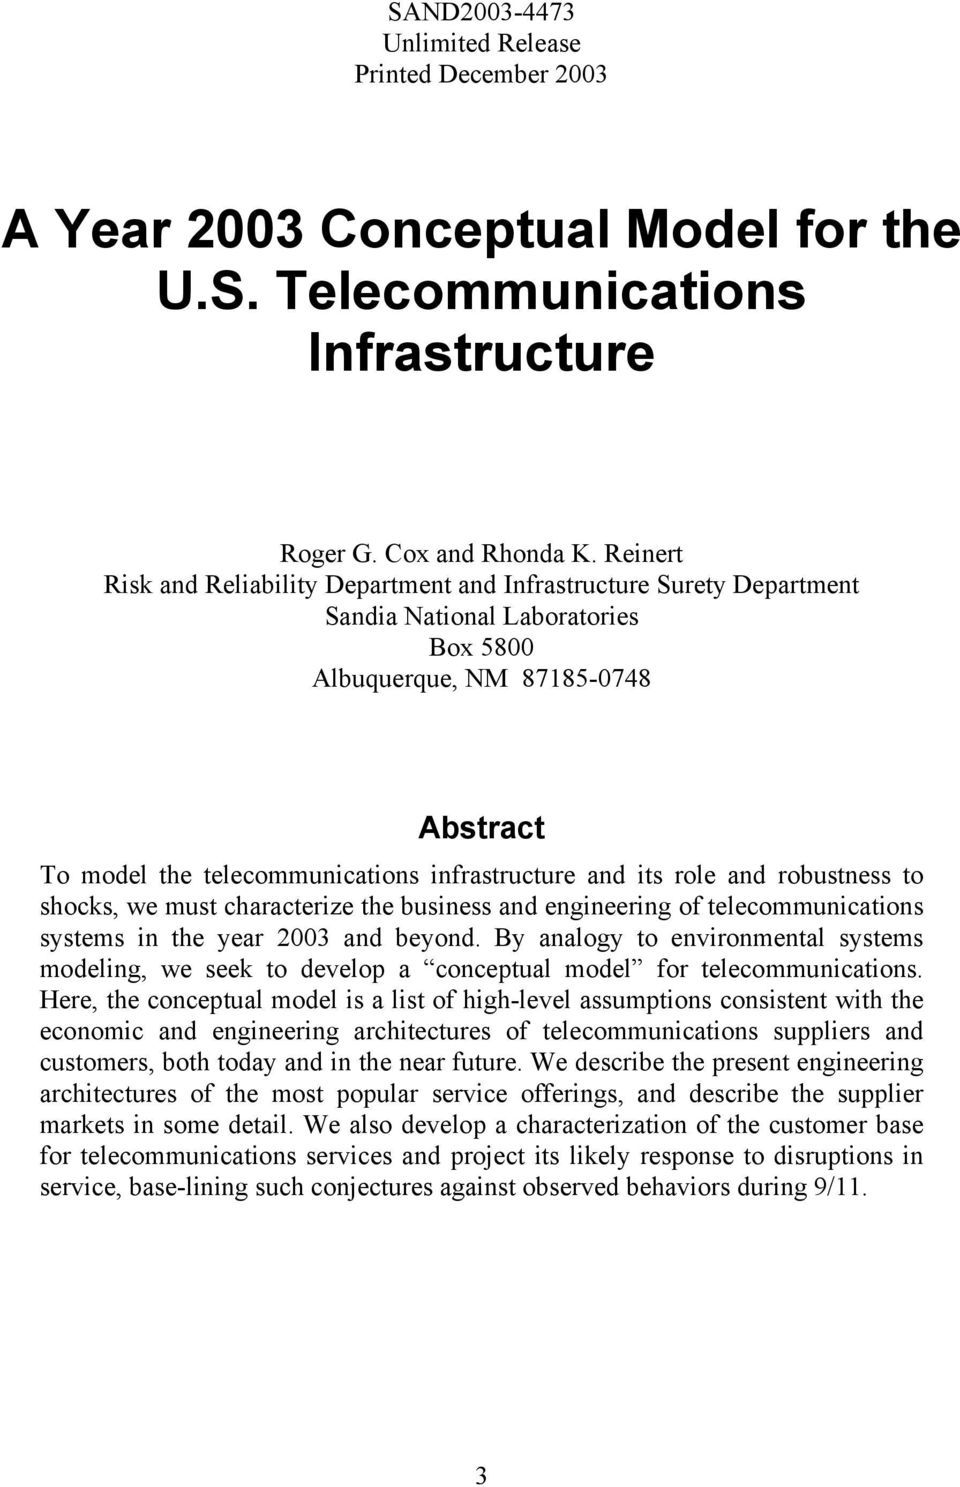 and its role and robustness to shocks, we must characterize the business and engineering of telecommunications systems in the year 2003 and beyond.